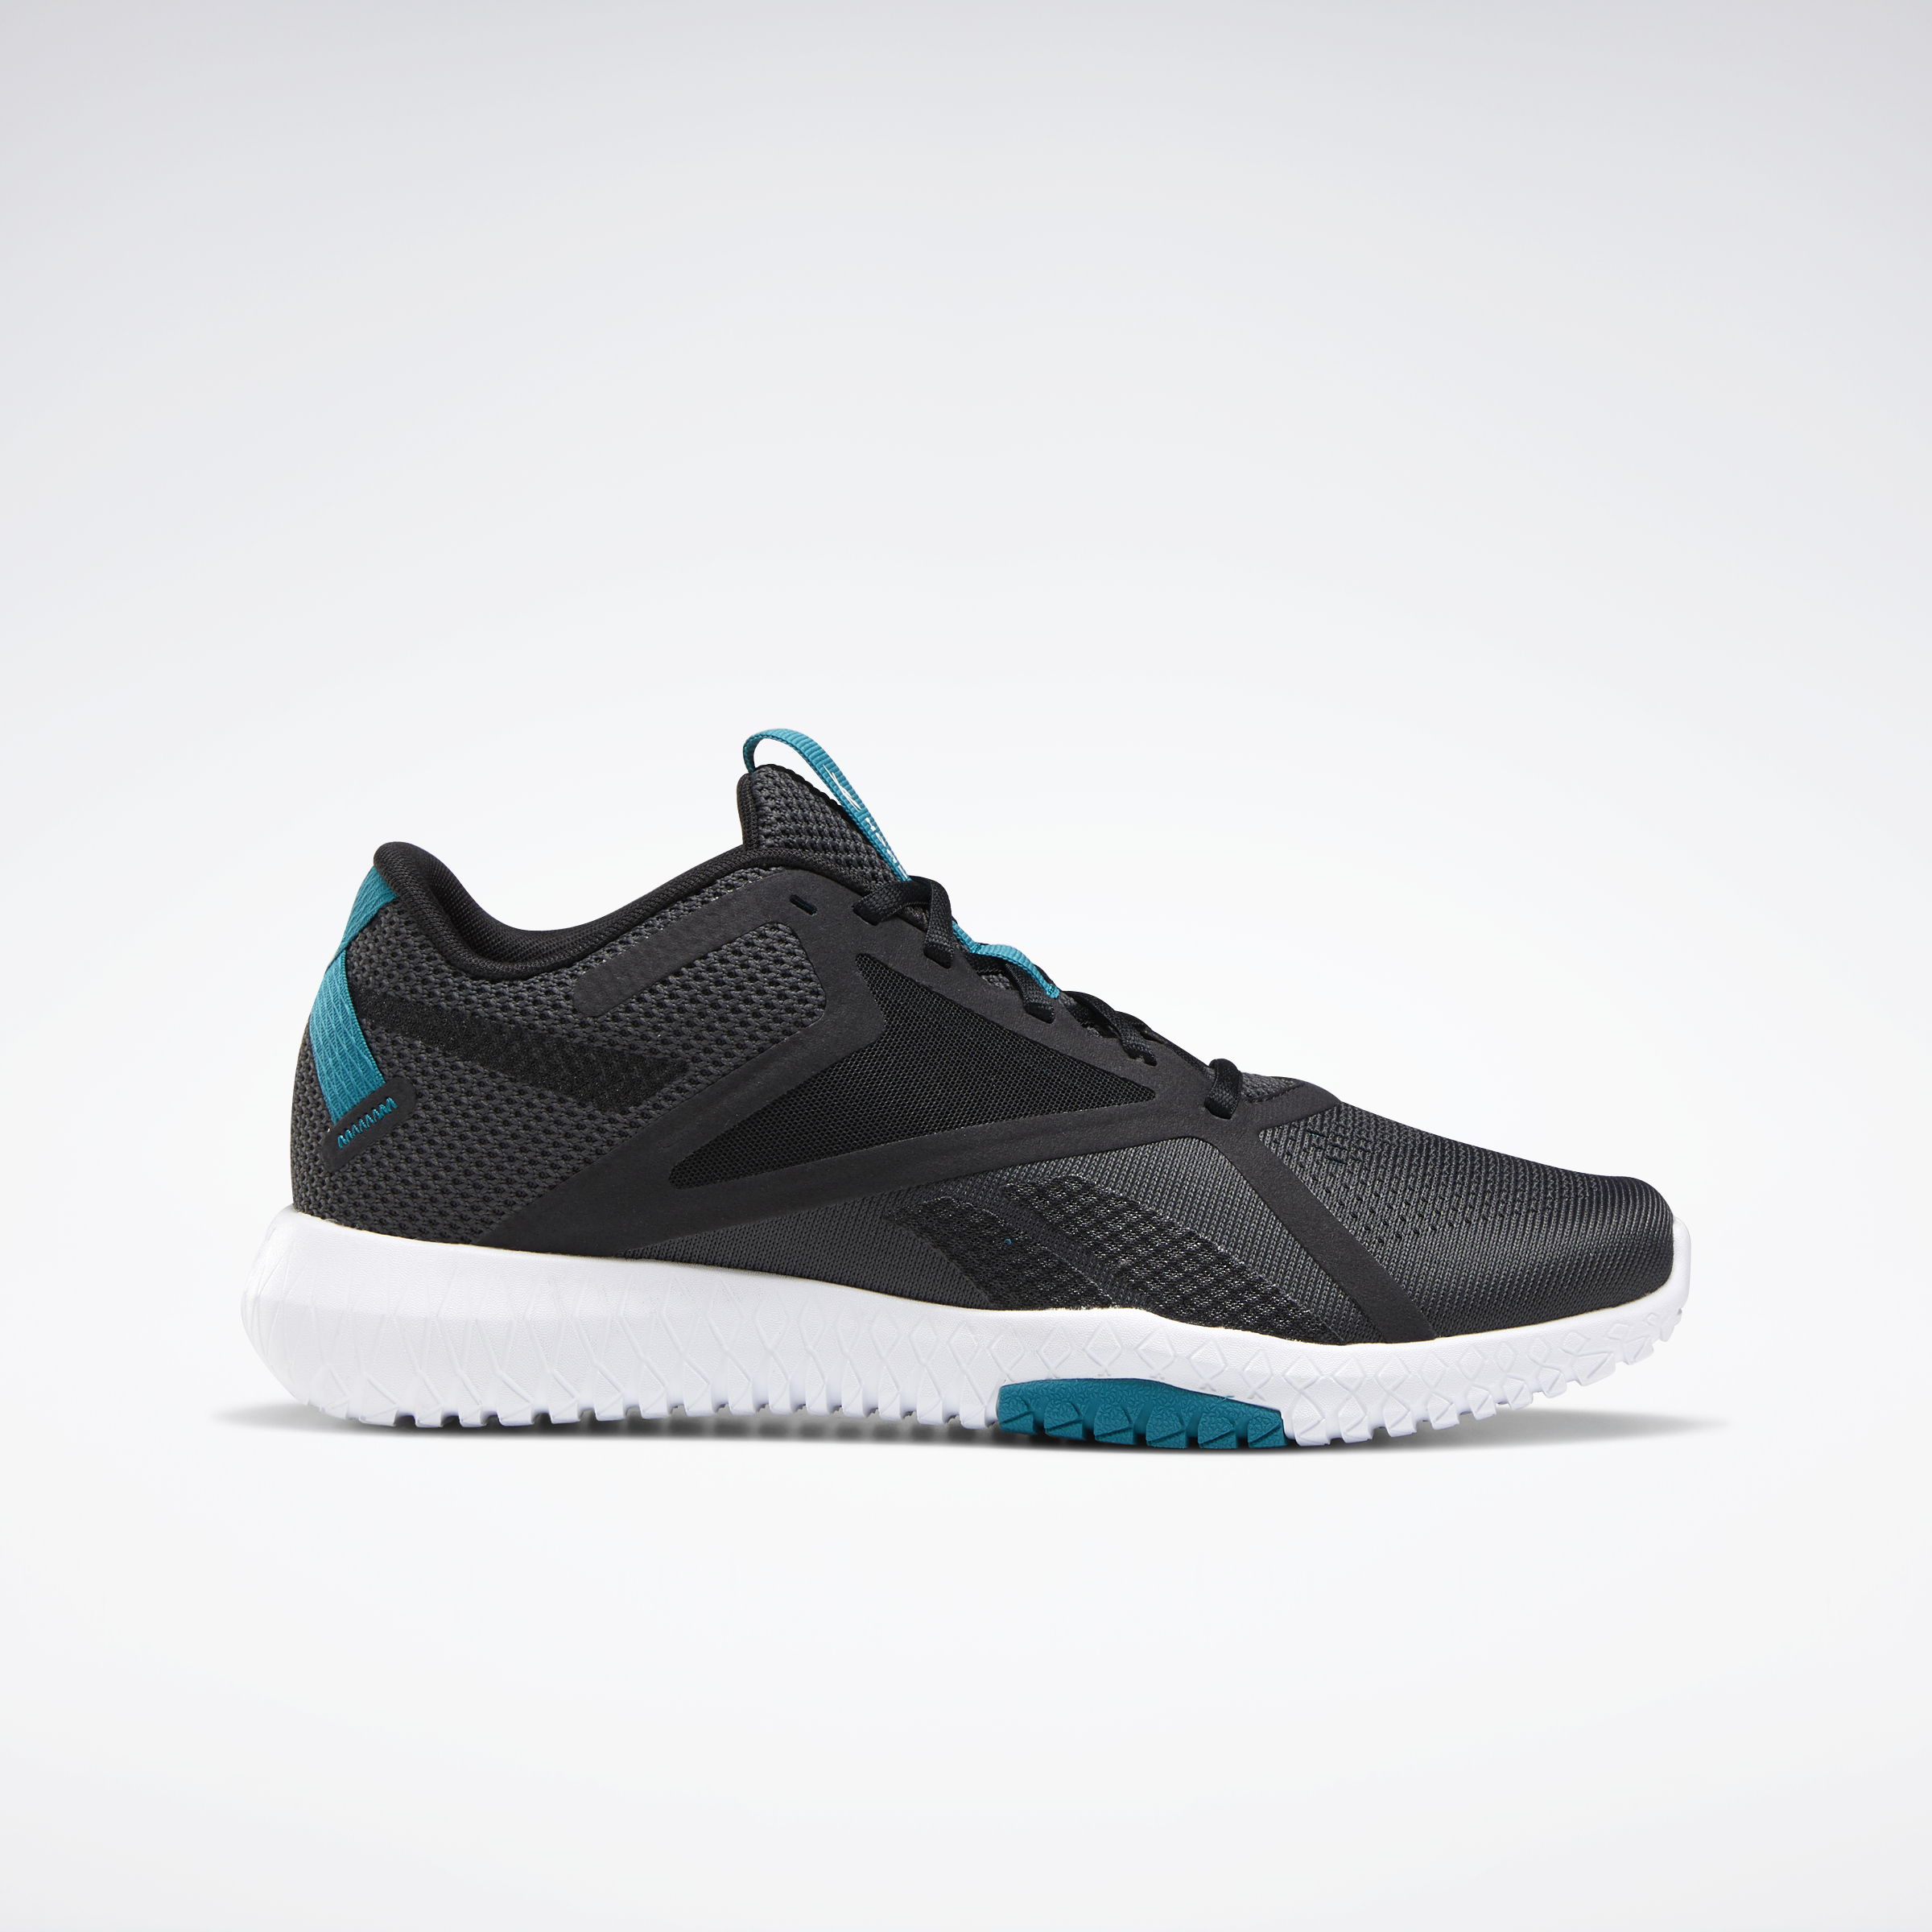 Reebok-Flexagon-Force-2-Extra-Wide-Men-039-s-Training-Shoes thumbnail 16